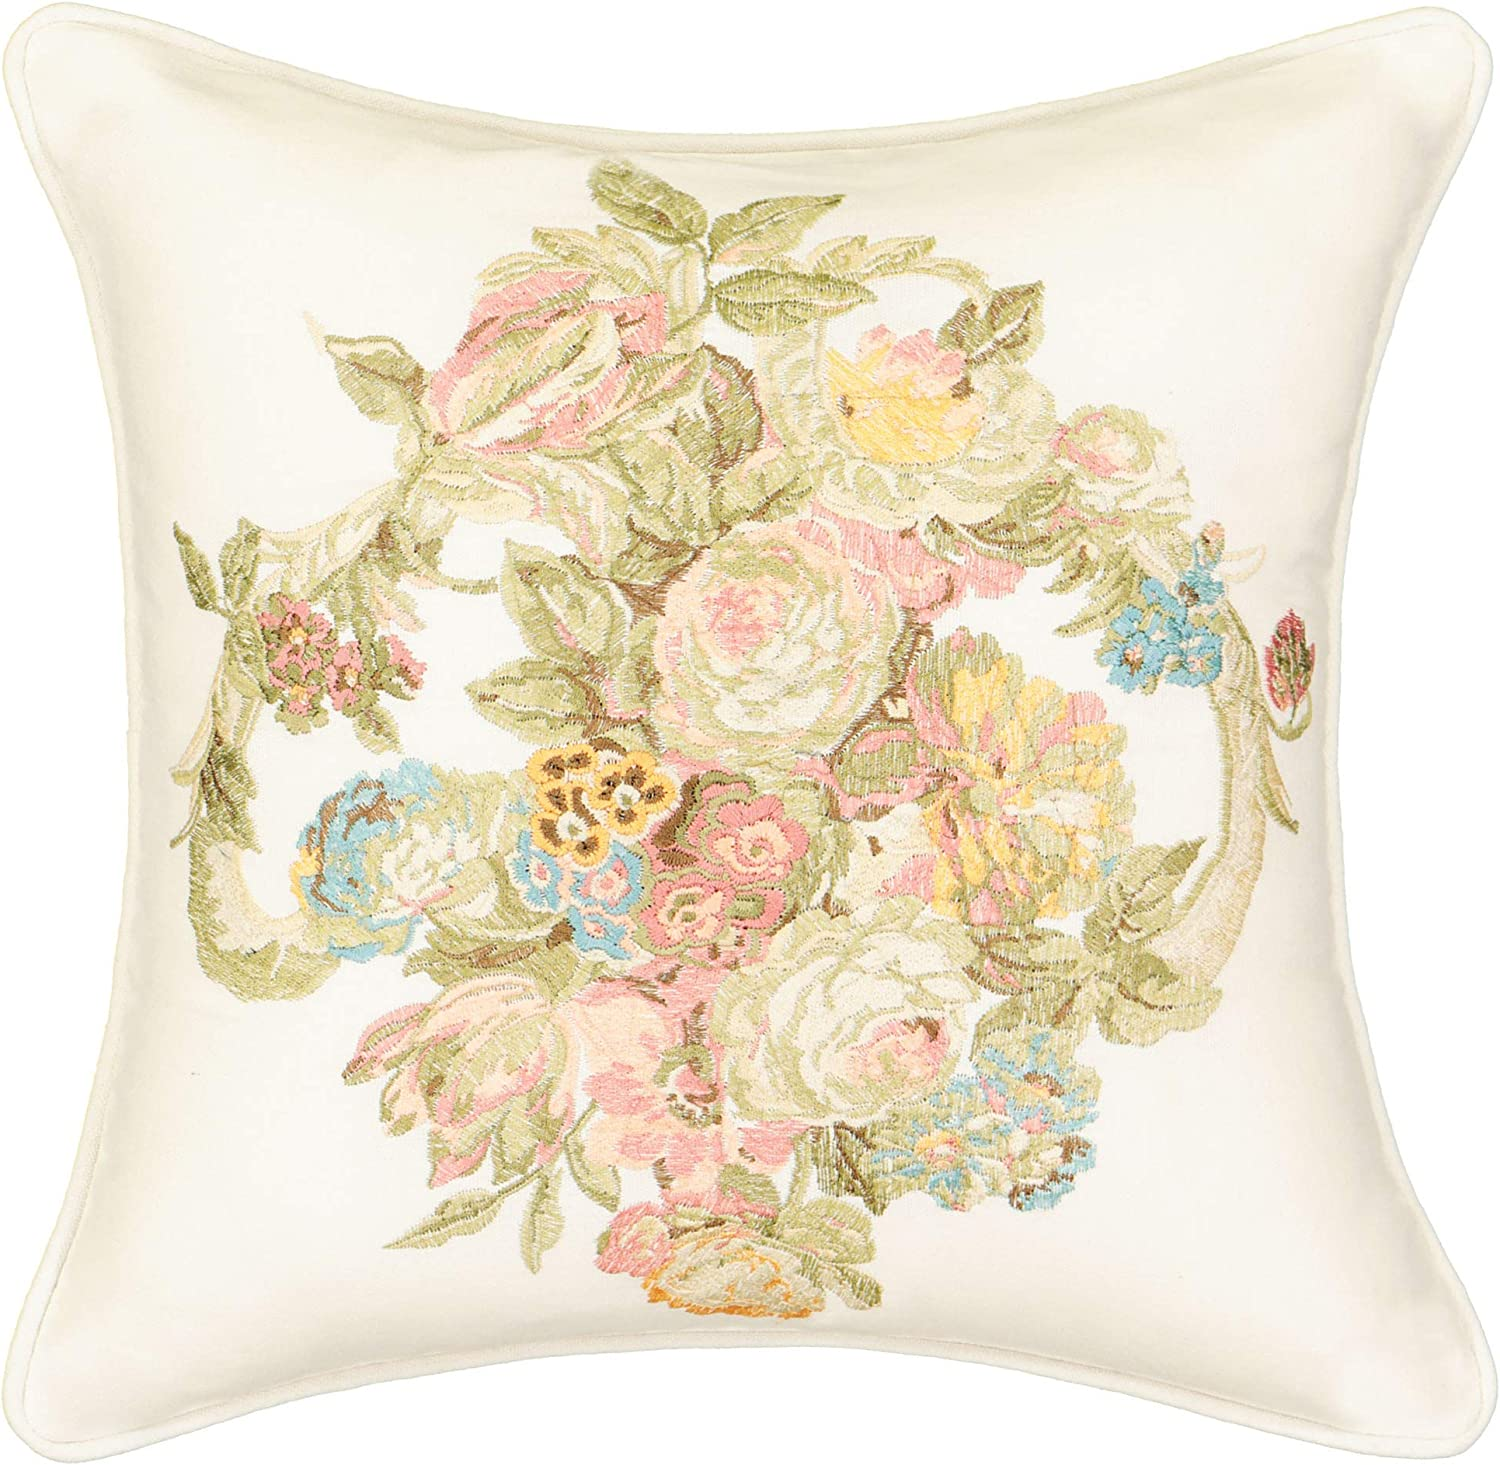 Waverly Spring Bling Decorative Pillow for Sofa Couch Bedroom Living Room, 16x16, Vapor